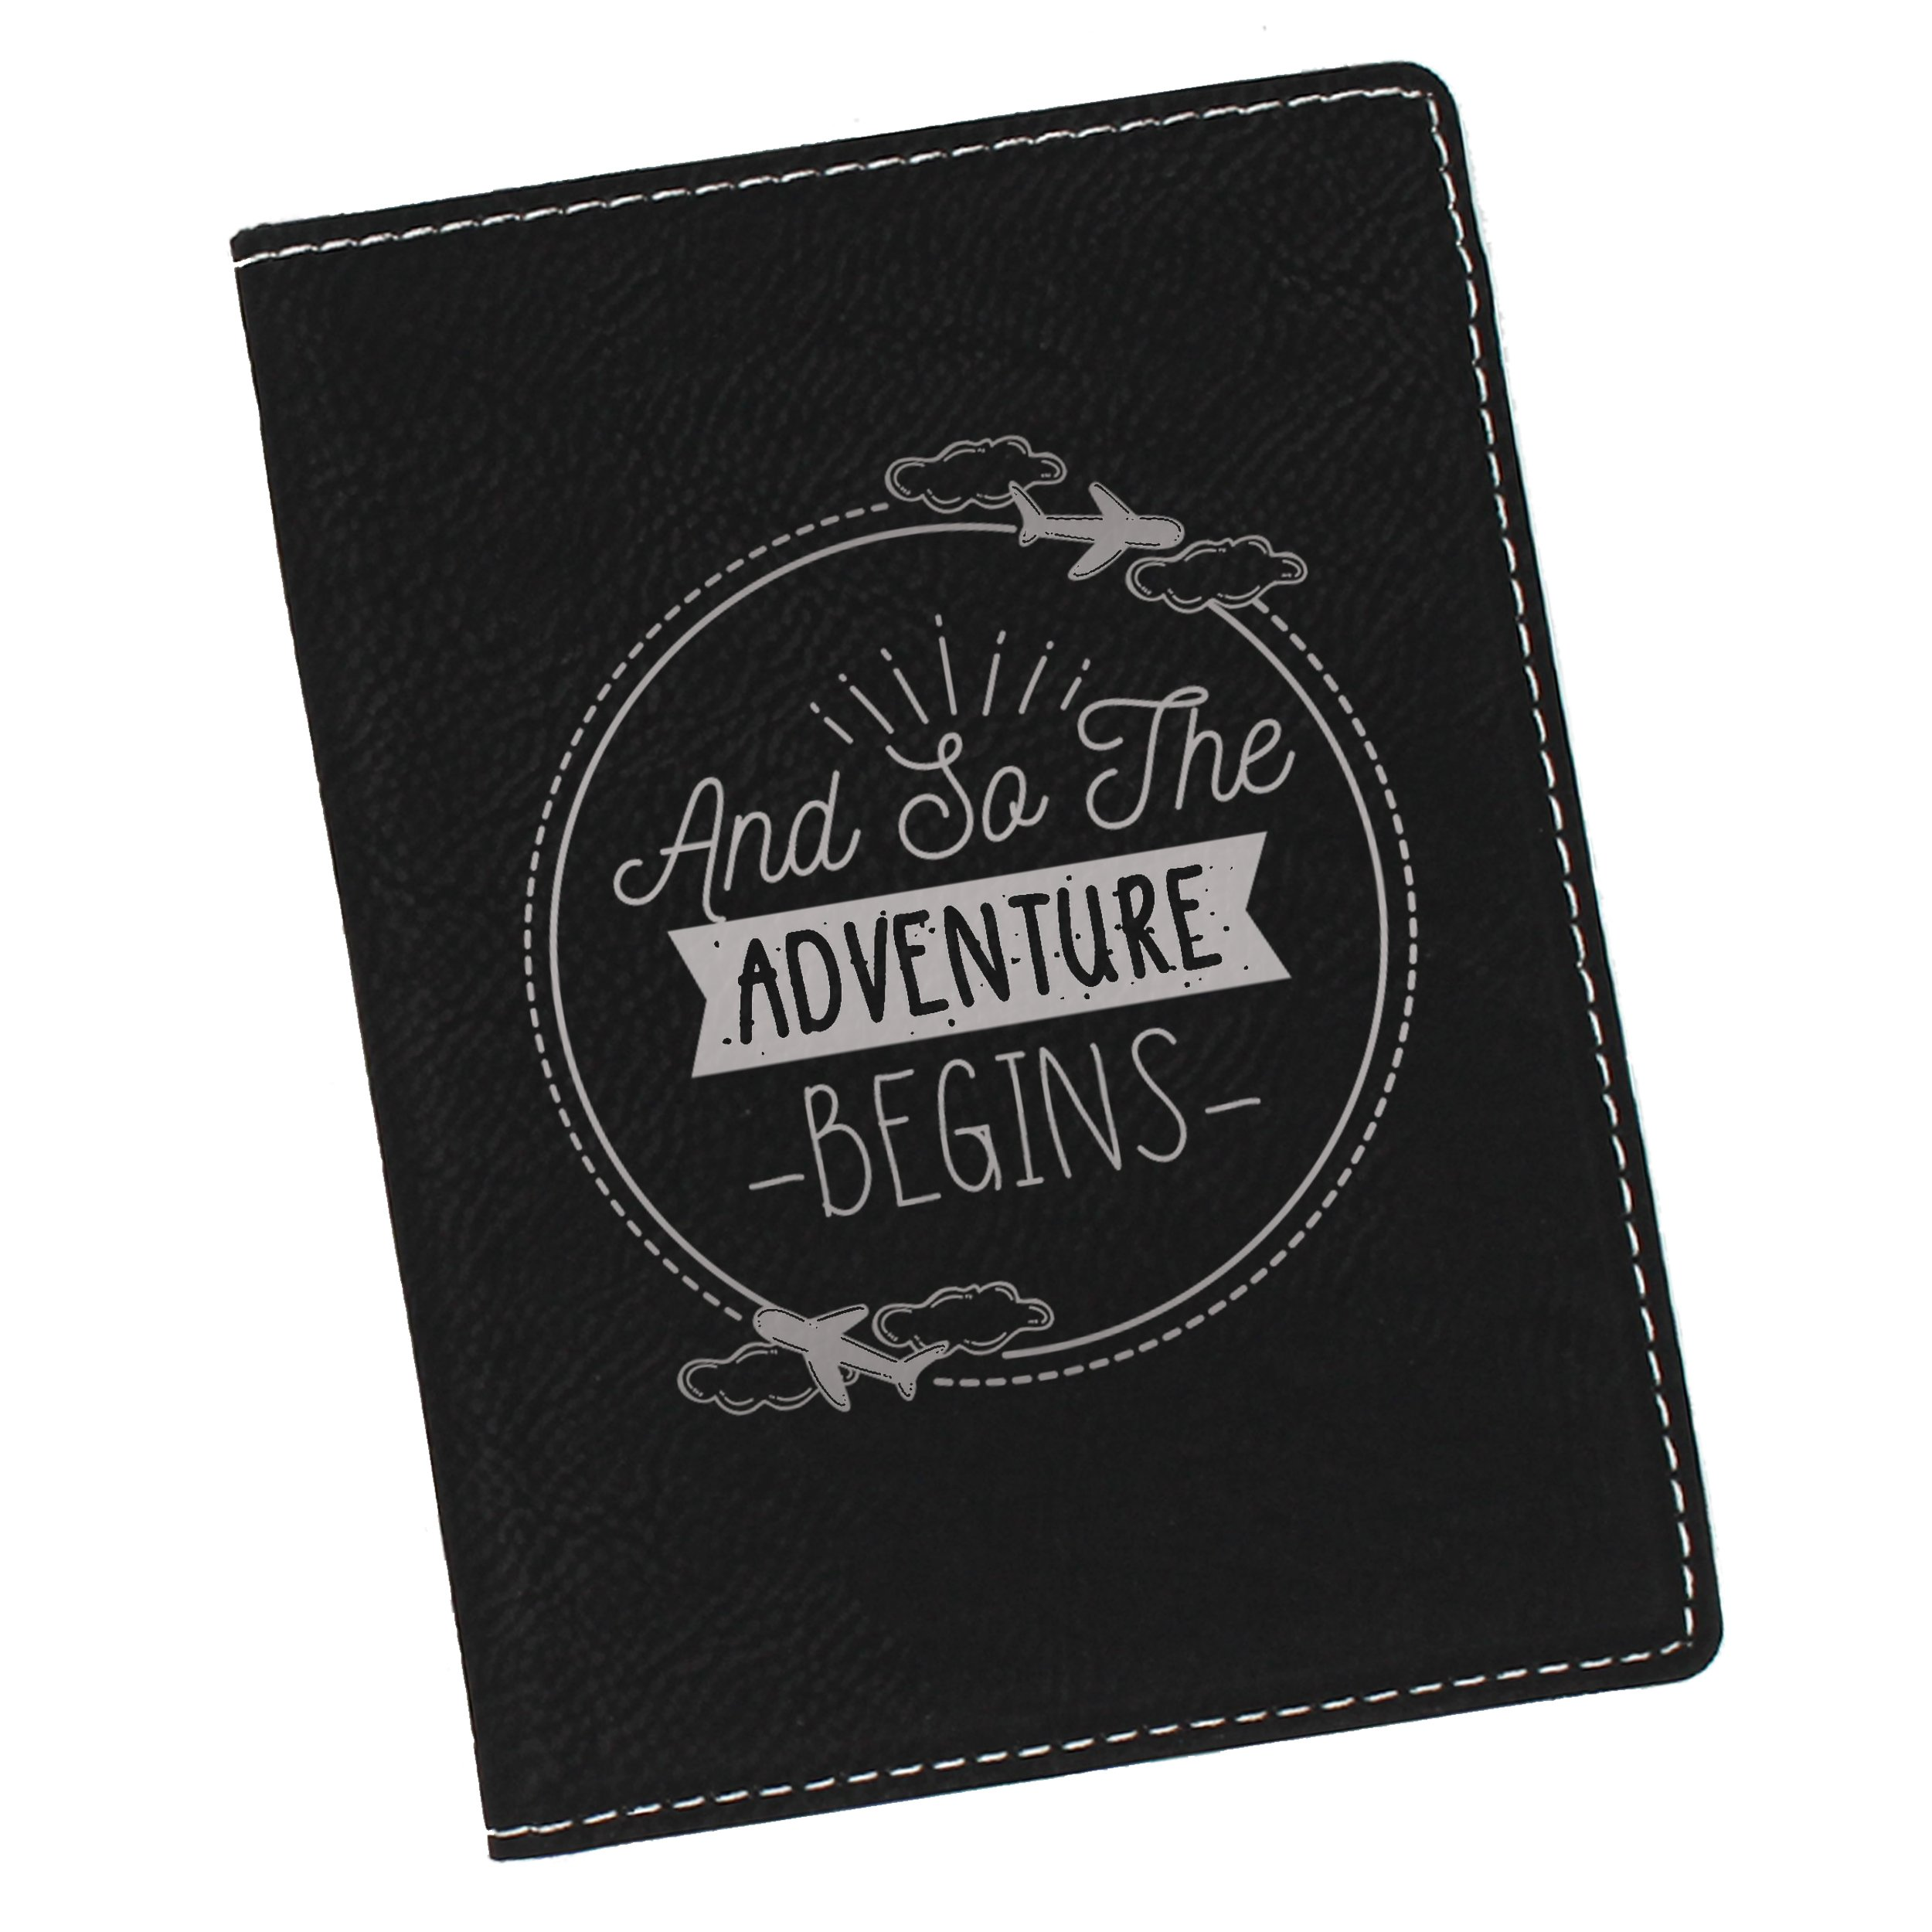 Passport Holder Cover Case - Fun Travel Gifts for Men, Women (Worth Style Black with Silver)